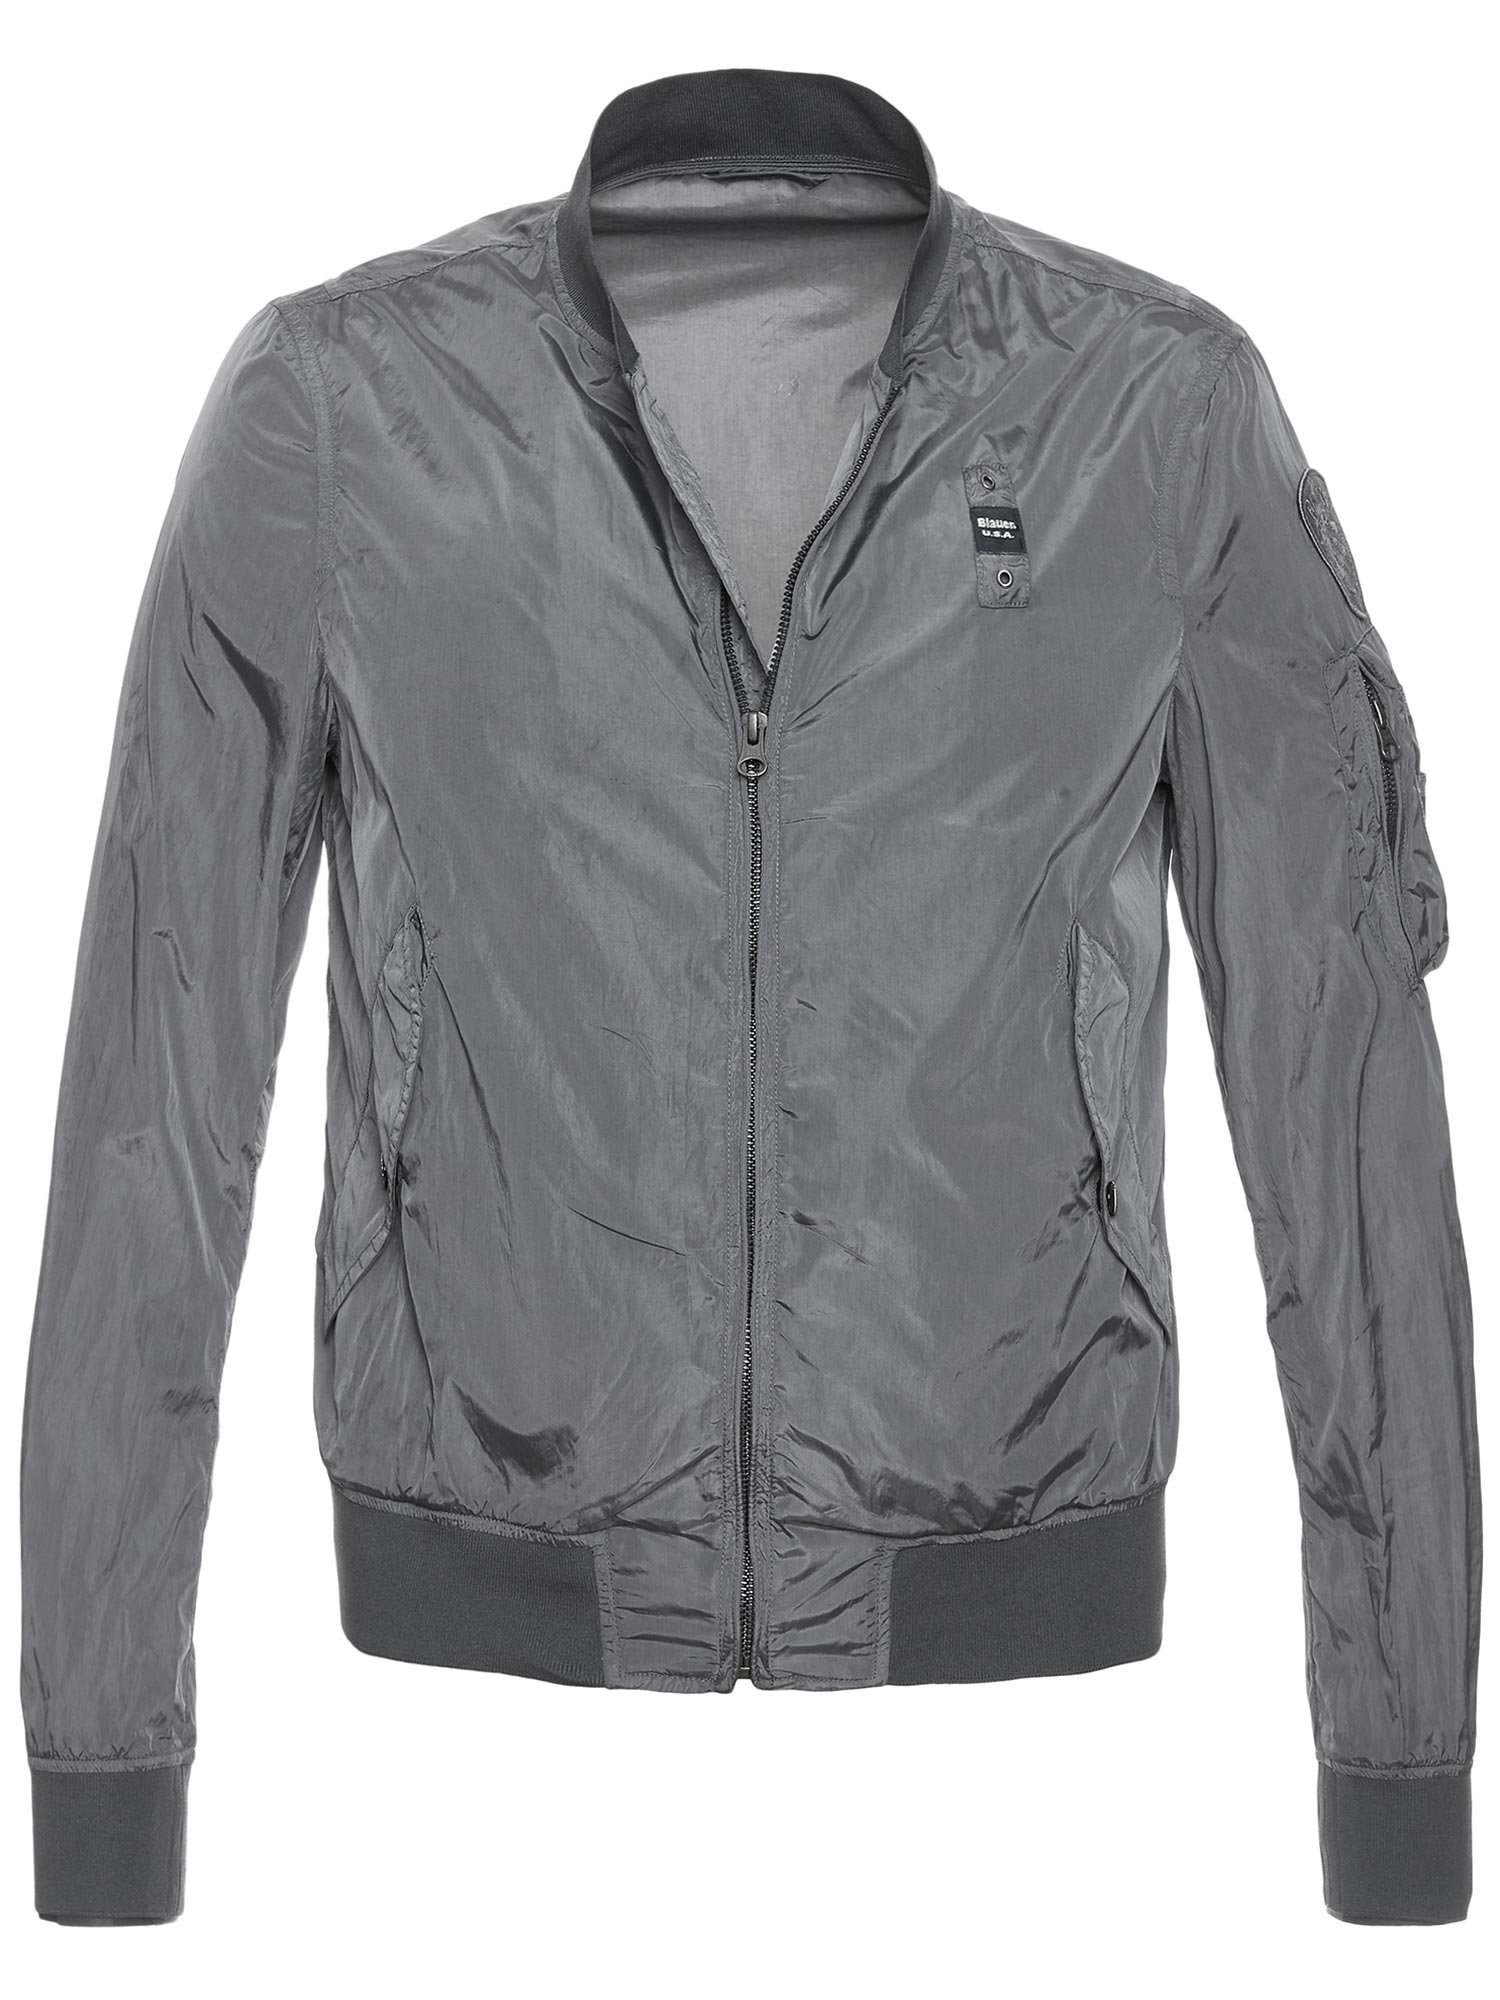 Blauer - GIUBBINO AVIATOR ANTIVENTO HUNTER - Grigio Intenso - Blauer